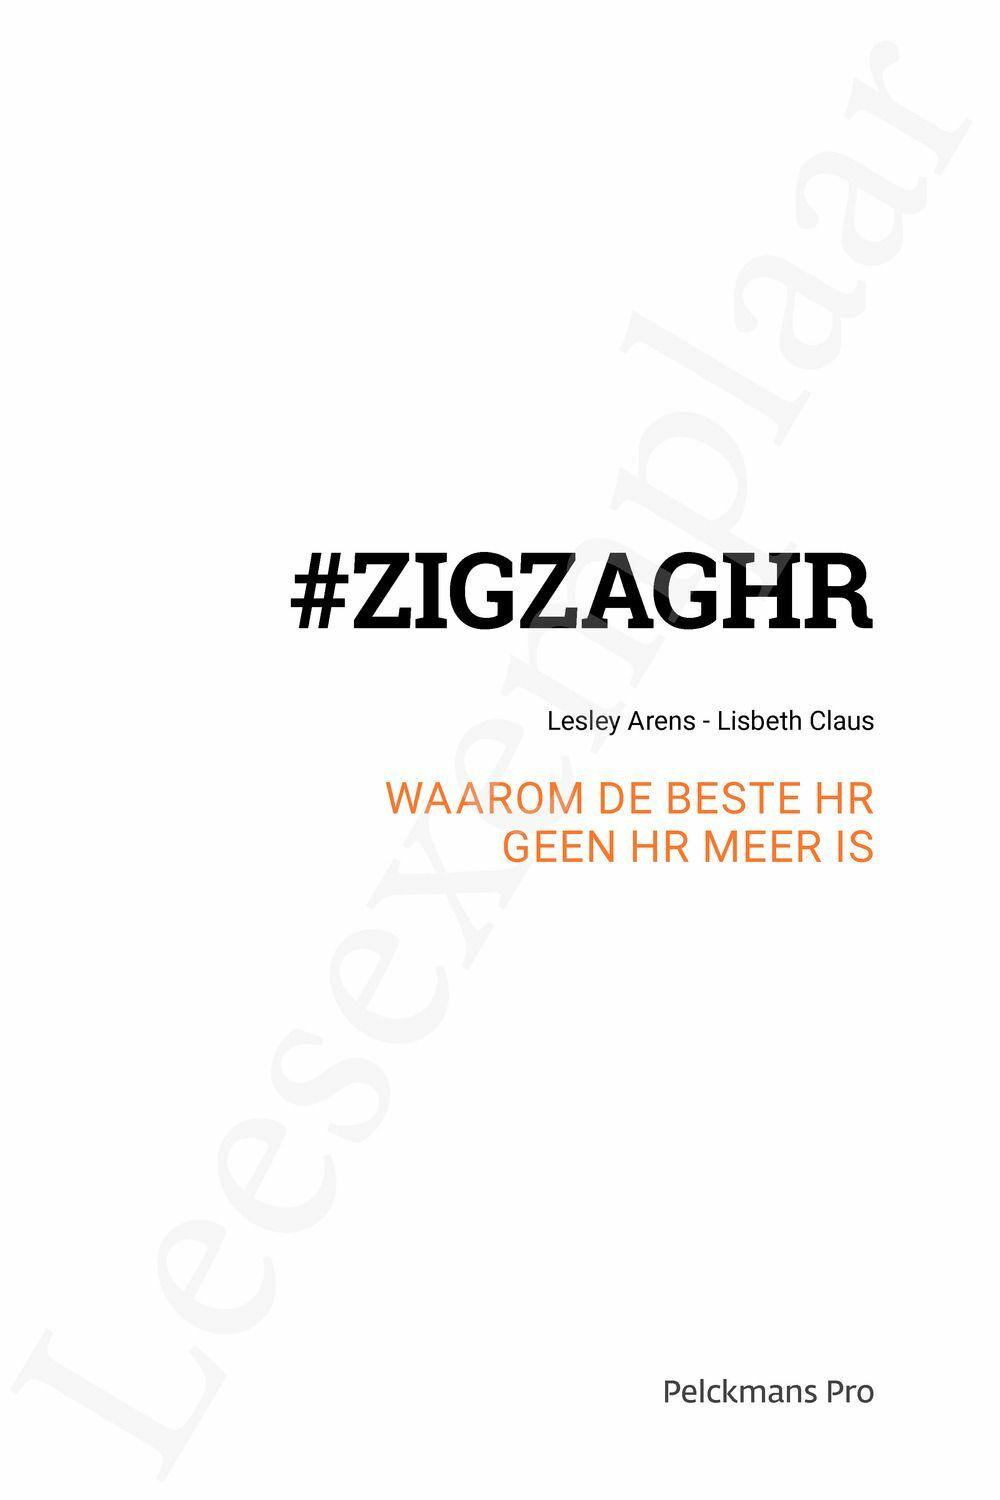 Preview: #ZIGZAGHR